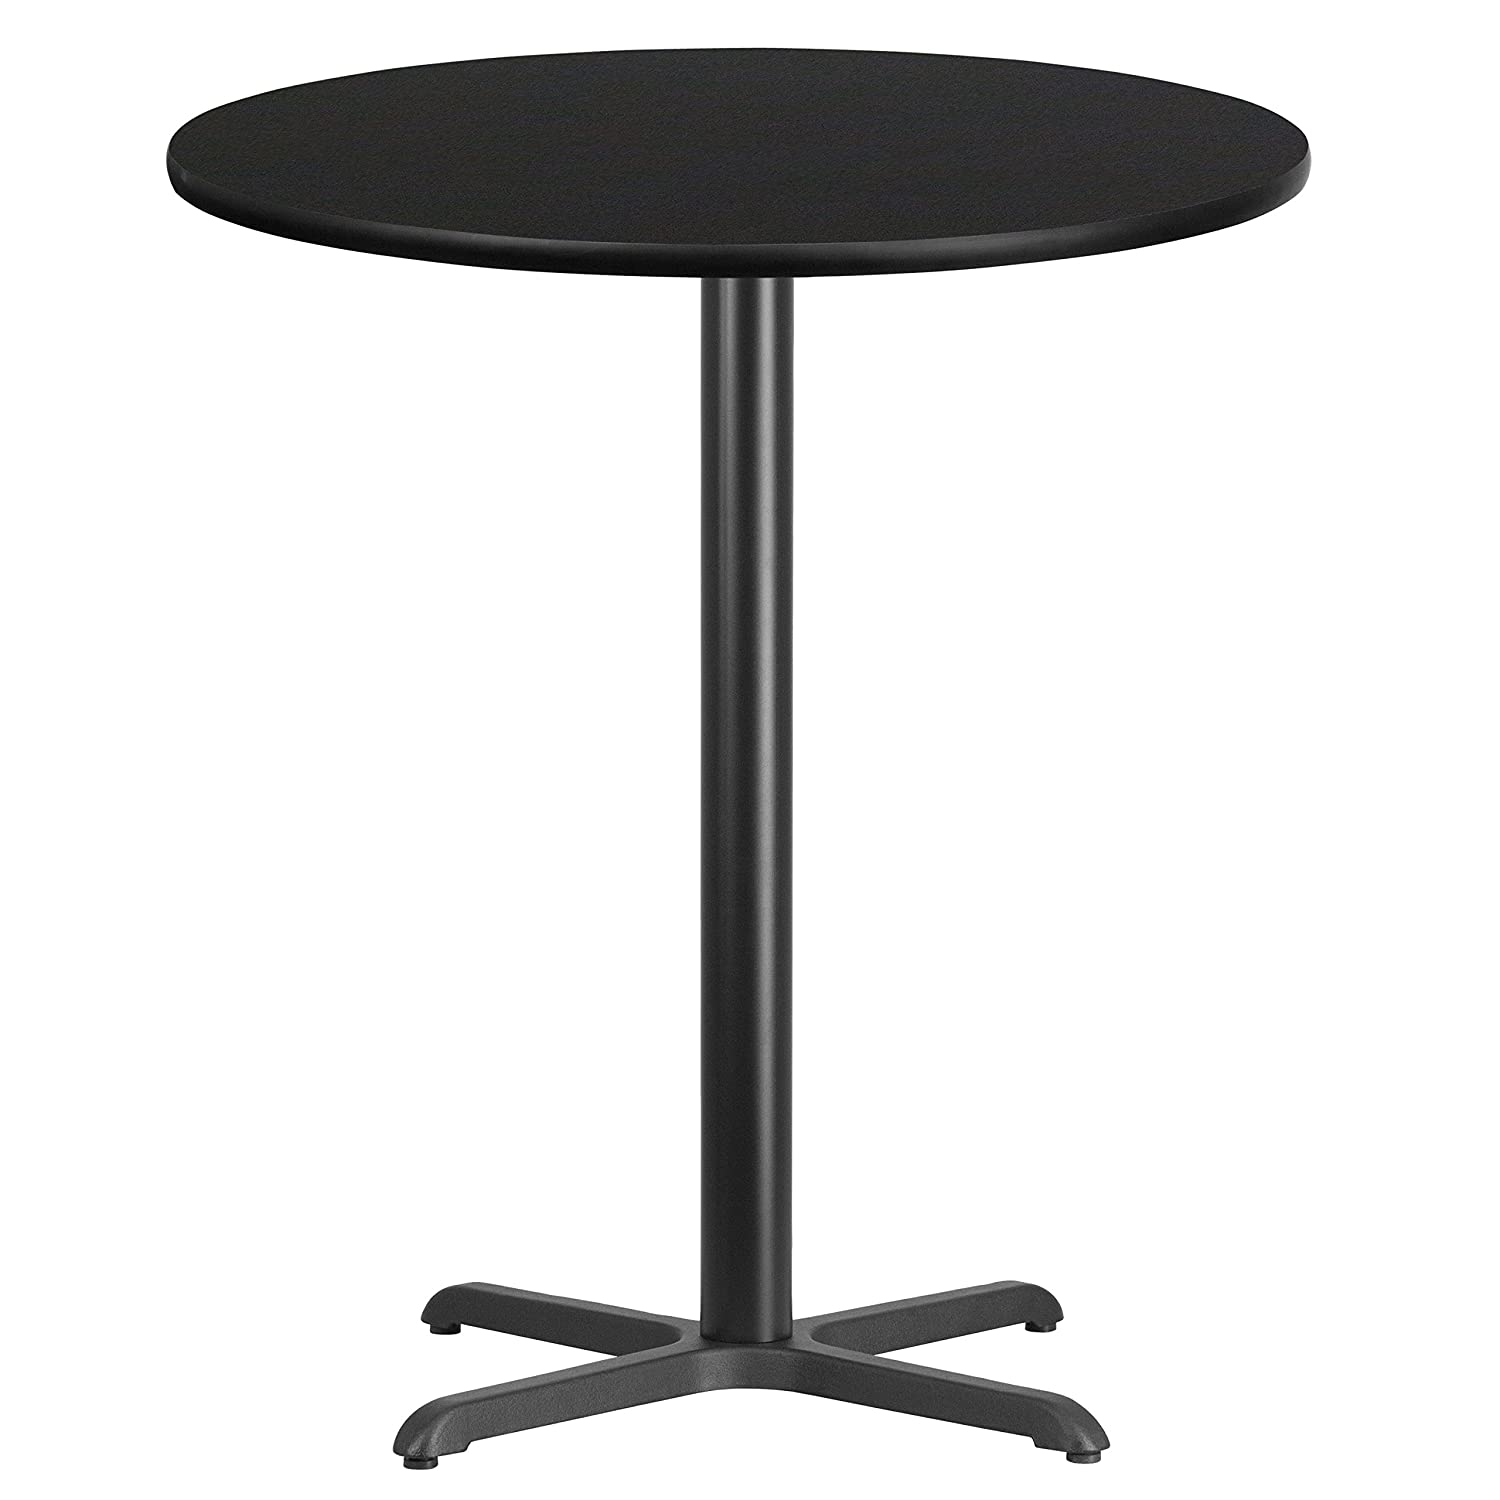 Flash Furniture 36 Round Black Laminate Table Top with 30 x 30 Bar Height Table Base